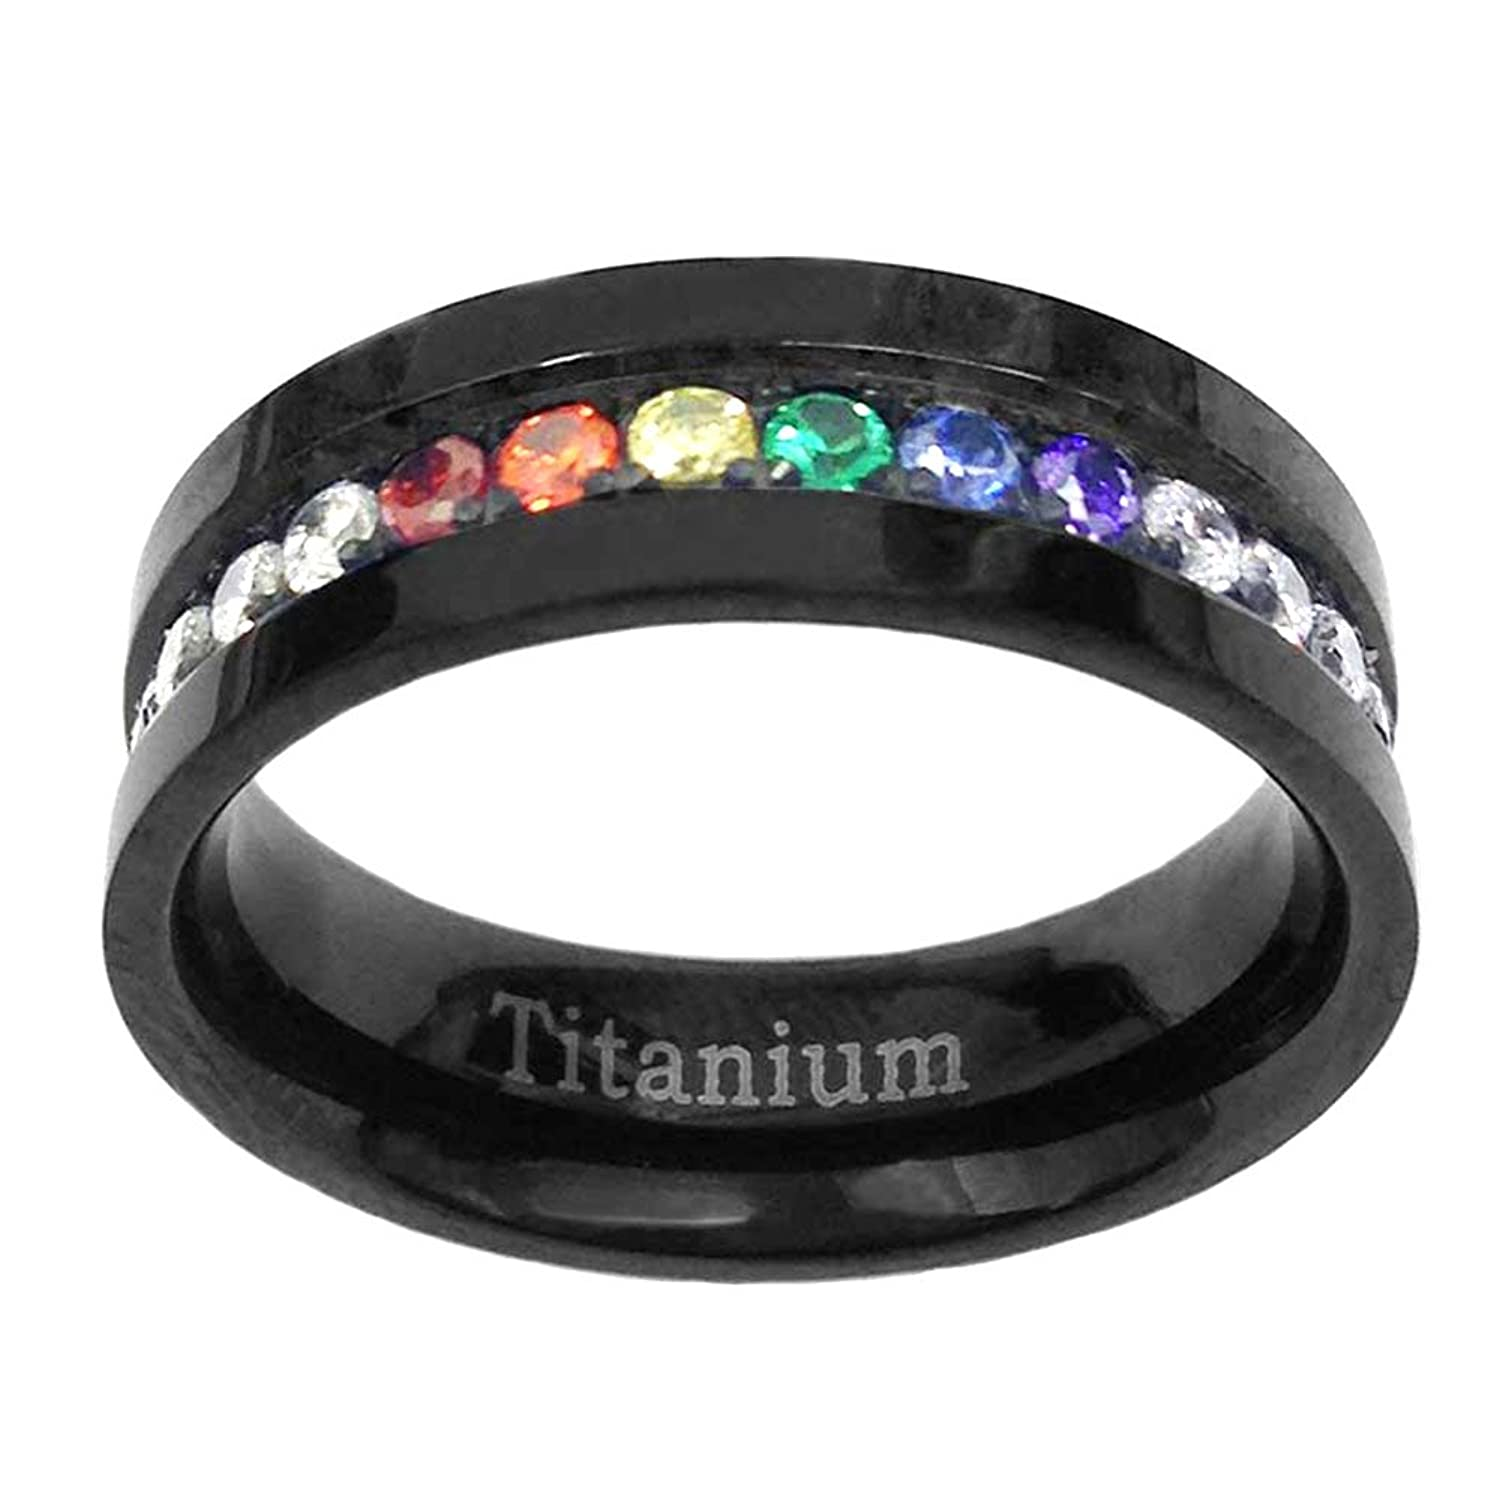 amazoncom 6mm black titanium gay lesbian engagement ring wedding band rainbow cz eternity band size 5 13 spj jewelry - Rainbow Wedding Rings